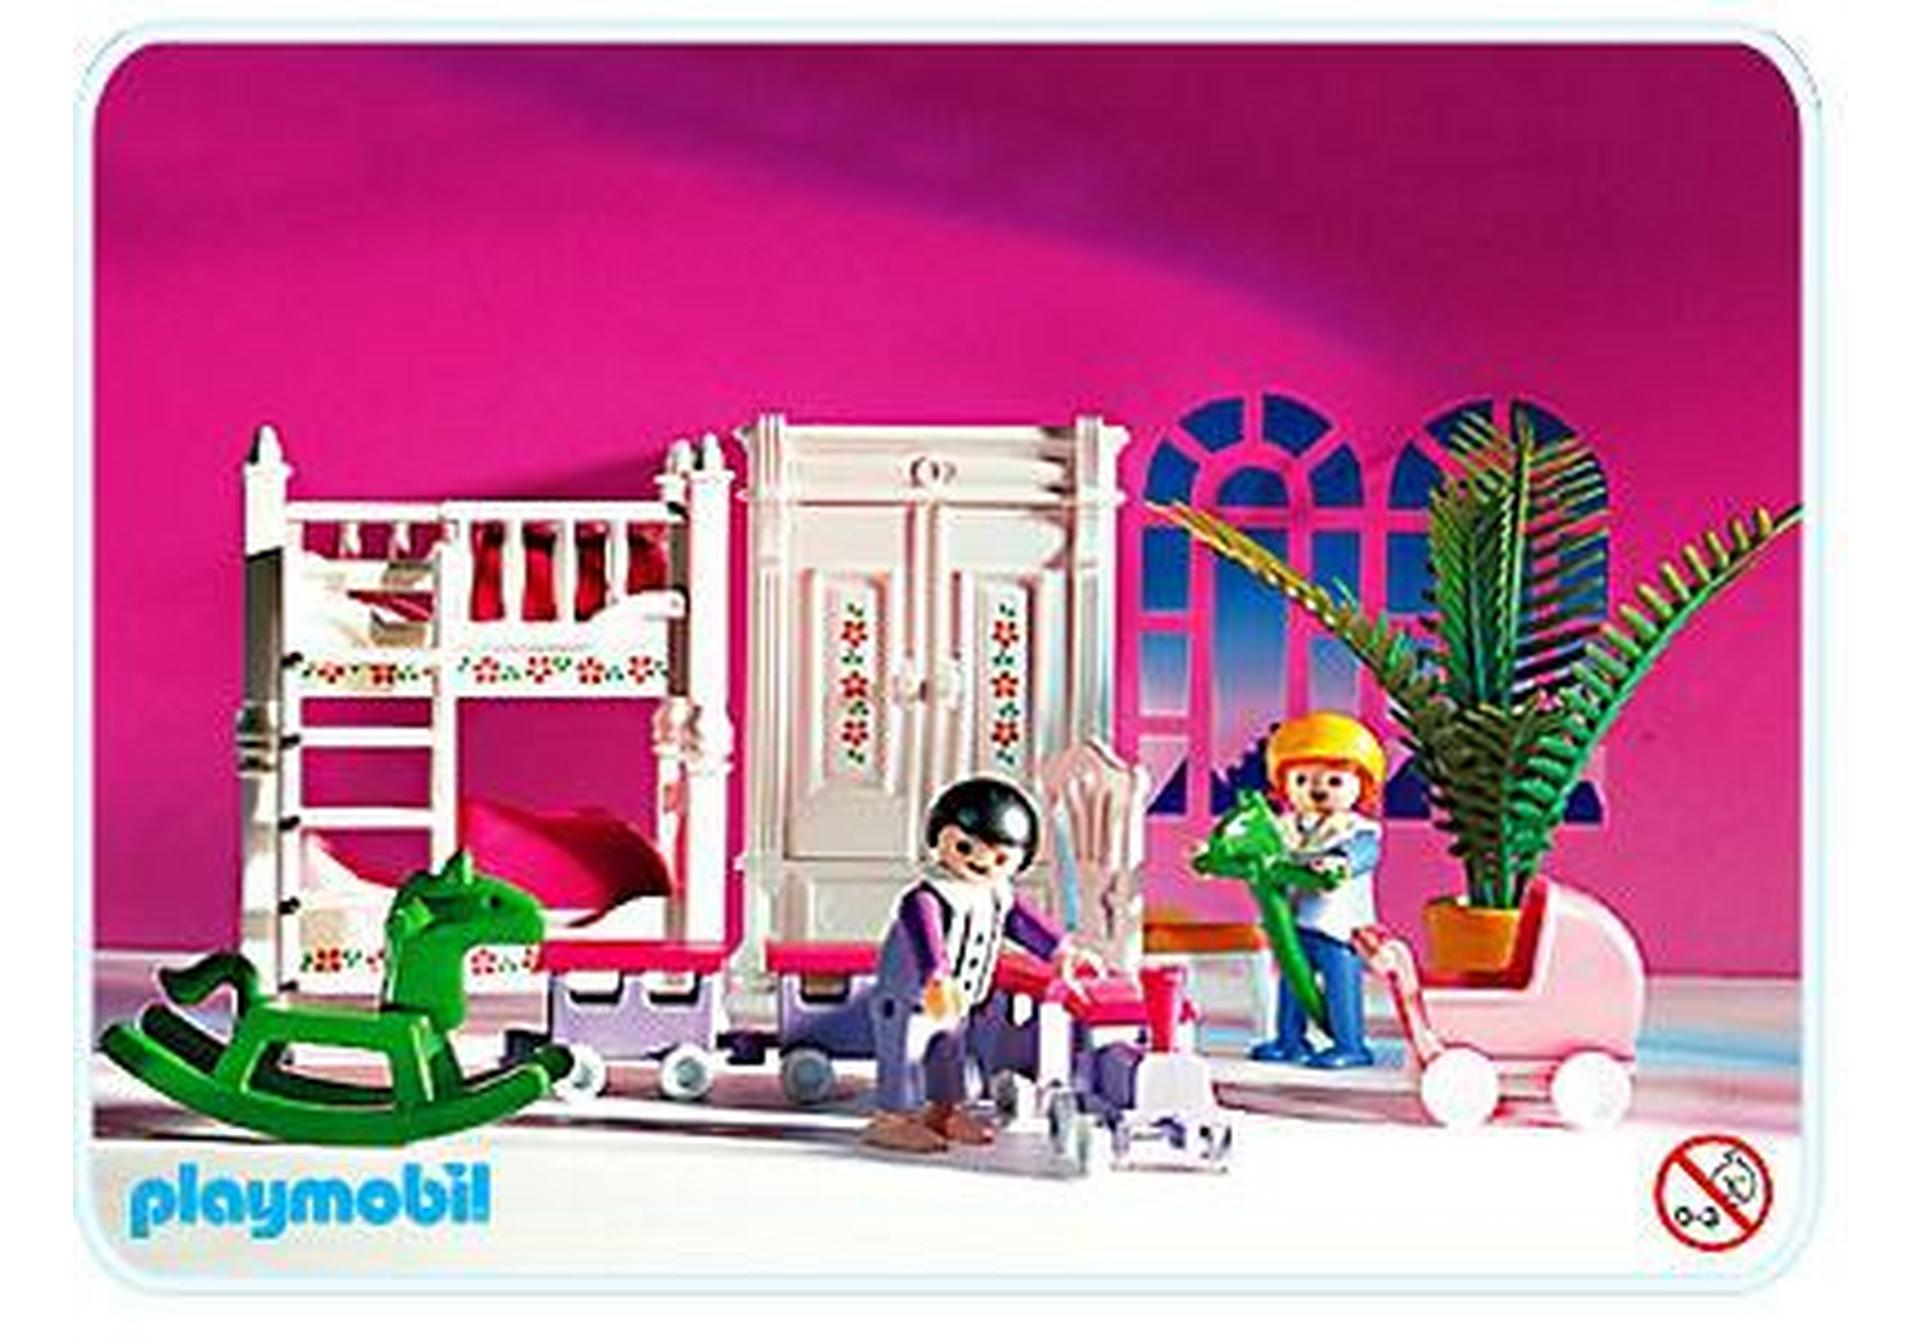 Kinderzimmer mit stockbetten 5312 a playmobil for Kinderzimmer playmobil